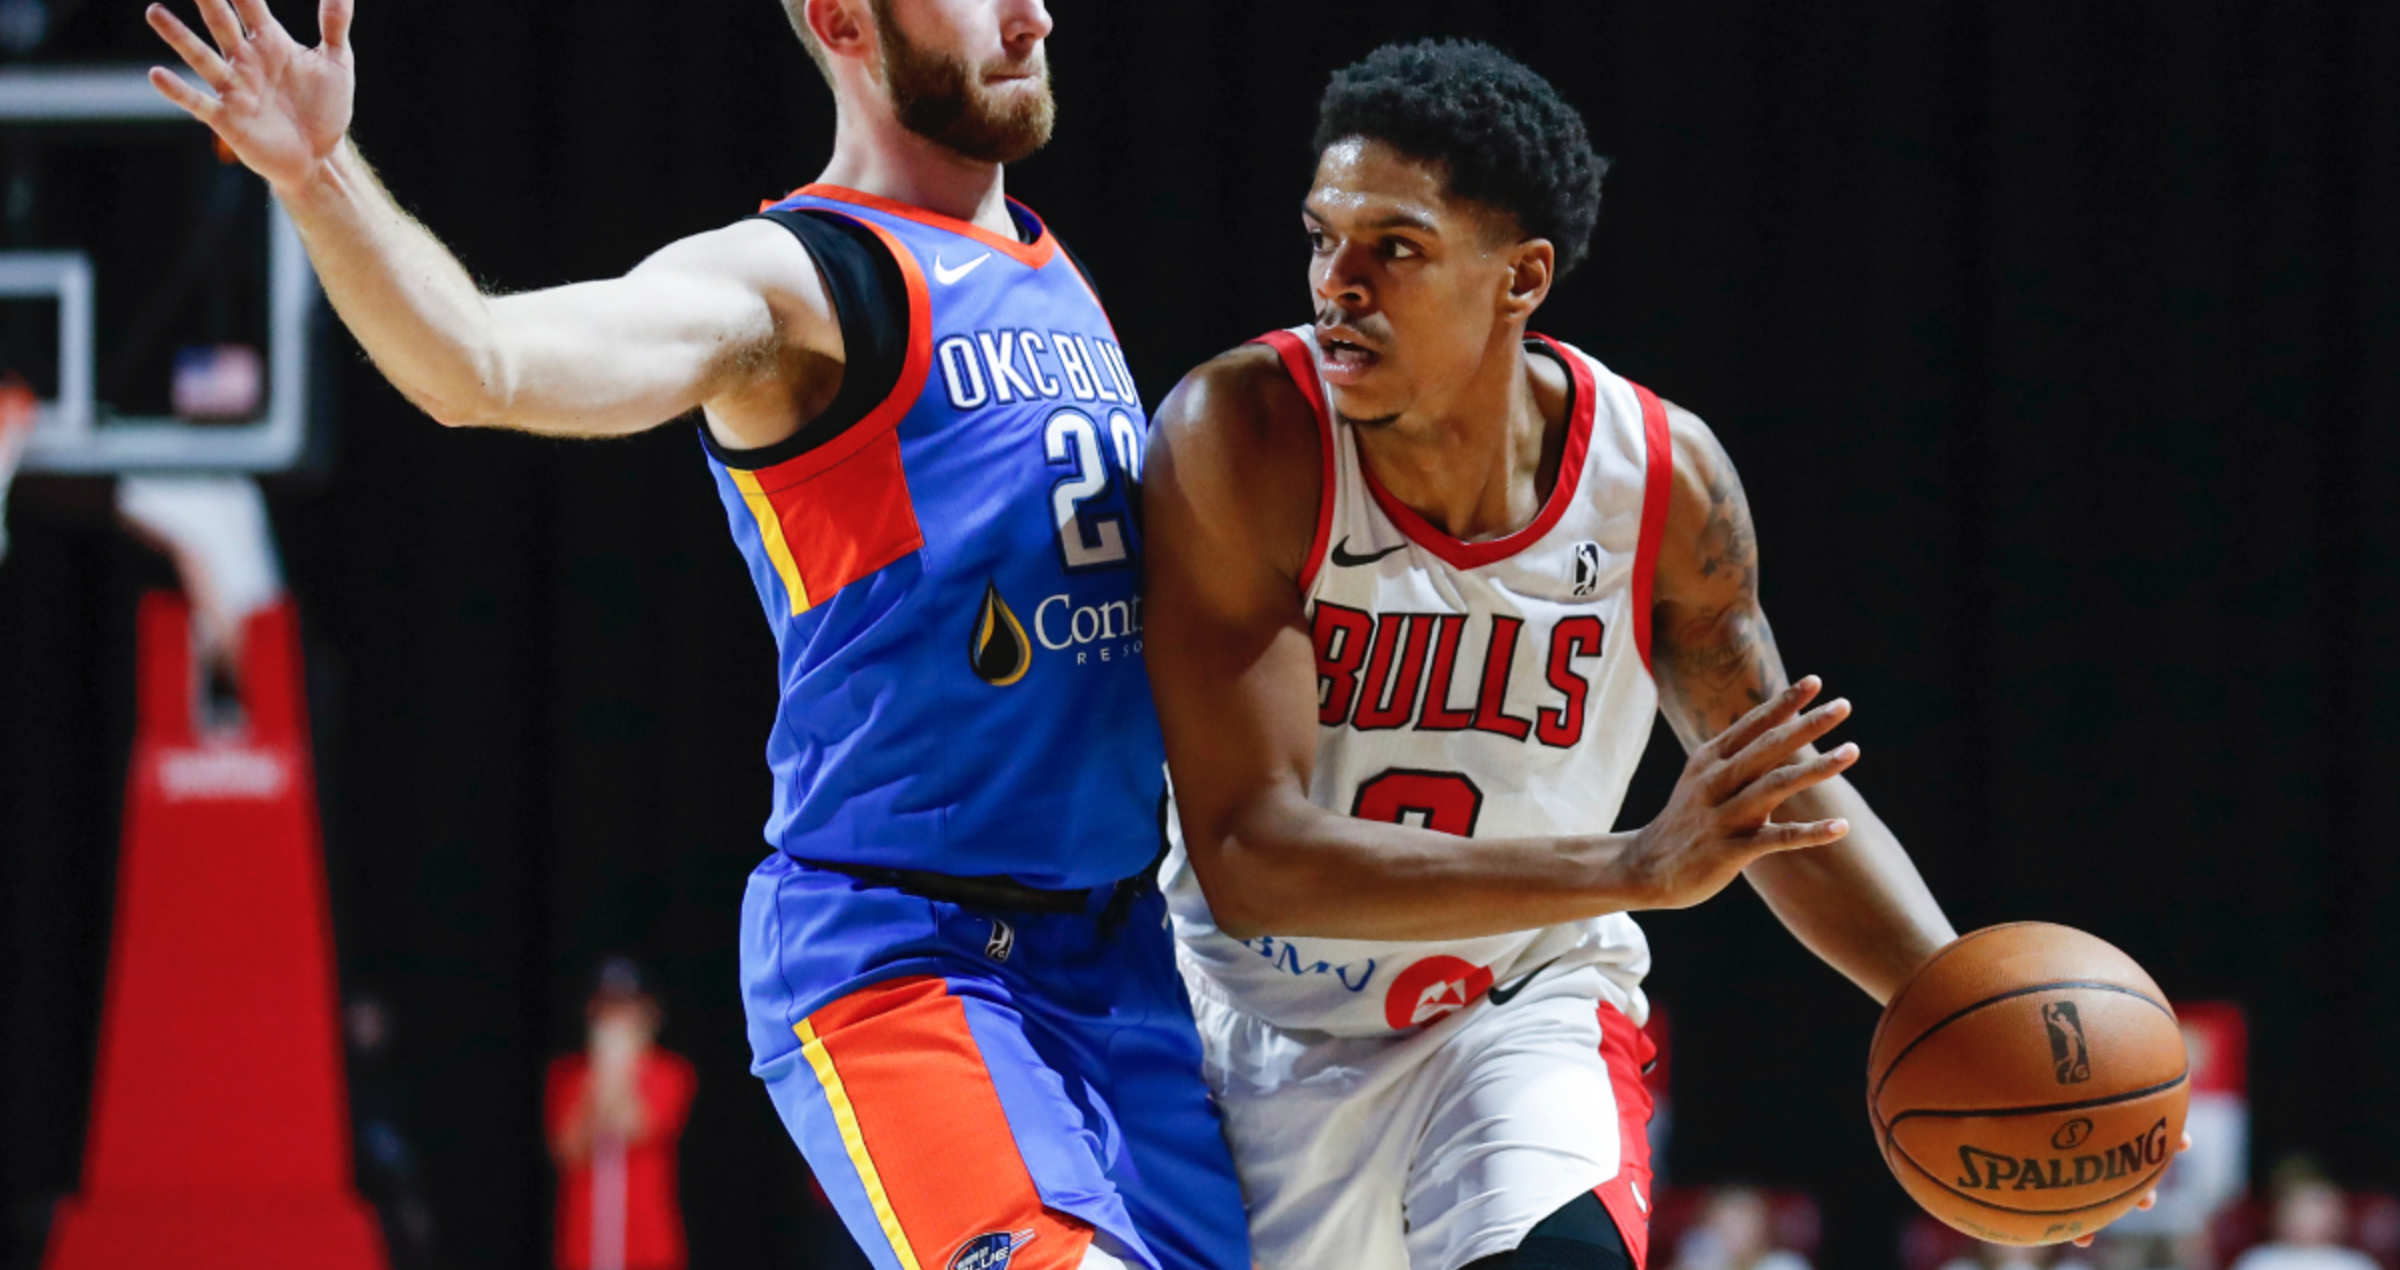 BULLS SIGN EDDIE TO 10-DAY CONTRACT